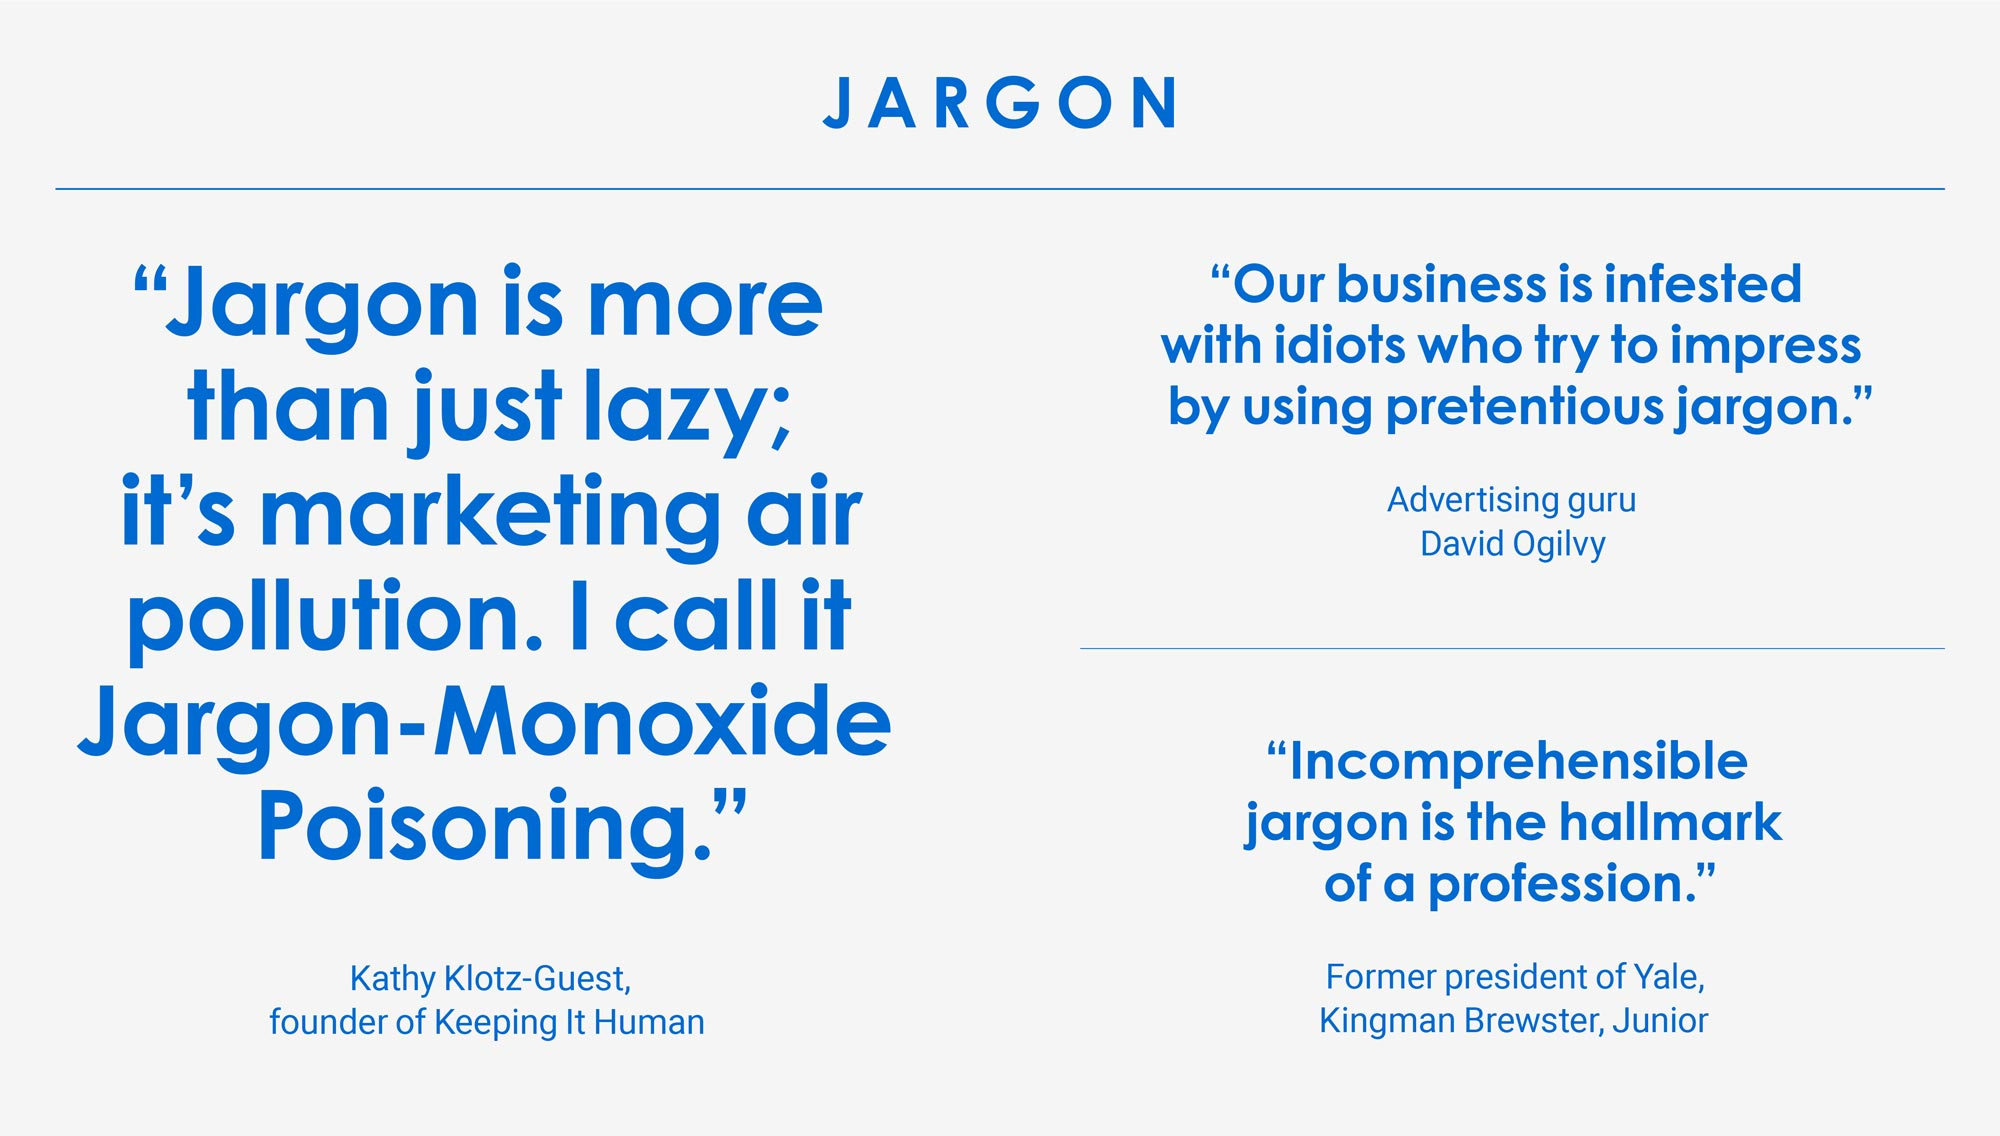 02. Jargon (Insight Agents)